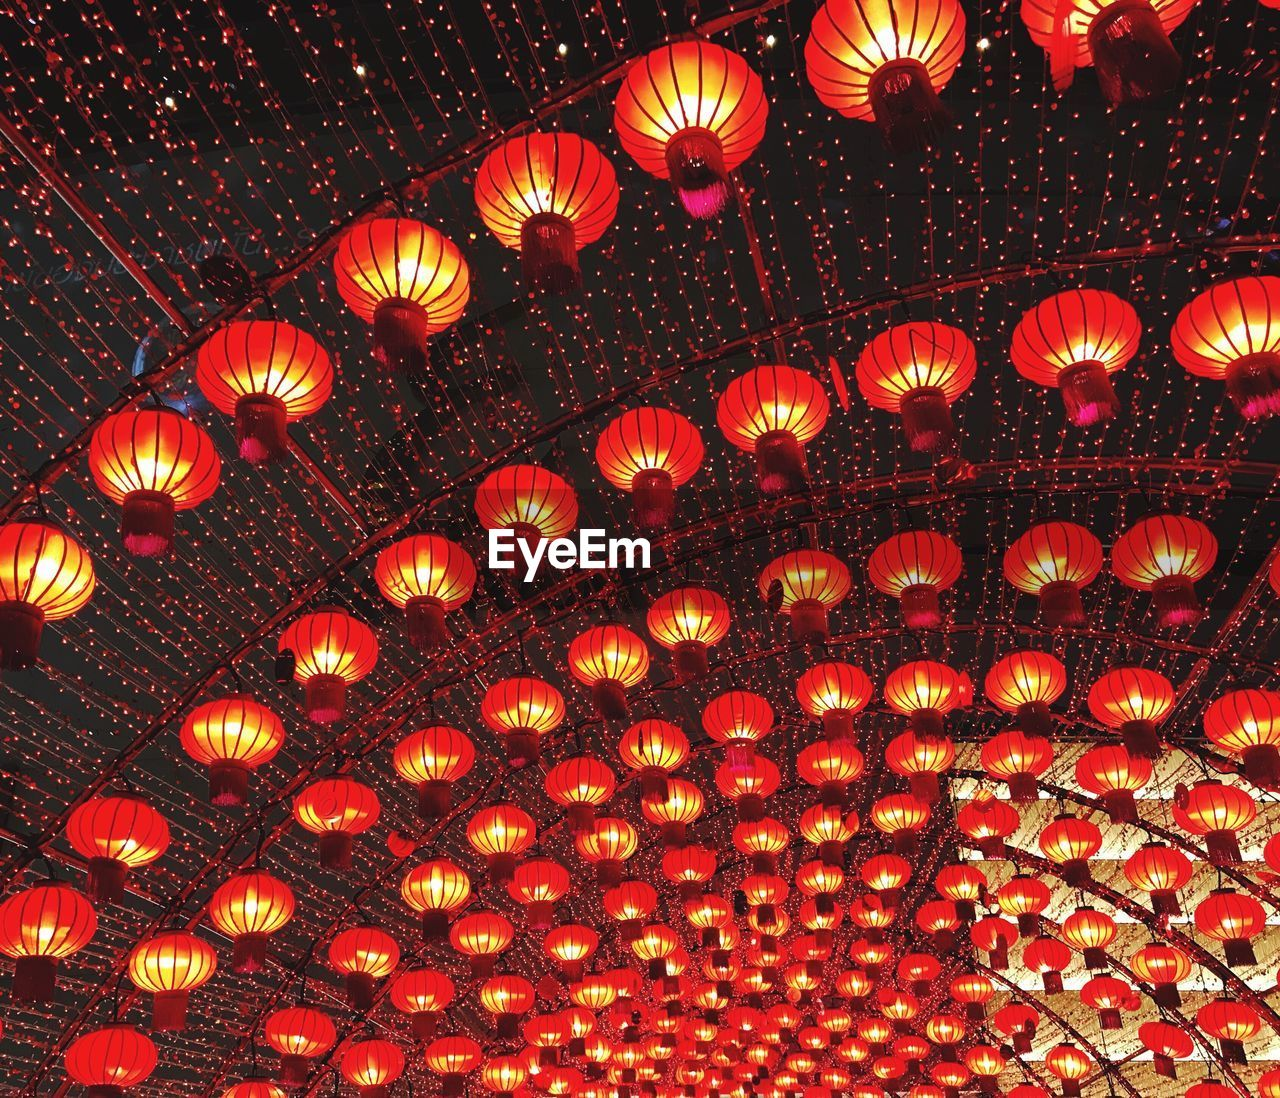 lighting equipment, illuminated, low angle view, chinese lantern, hanging, chinese lantern festival, lantern, no people, cultures, electricity, indoors, celebration, red, night, close-up